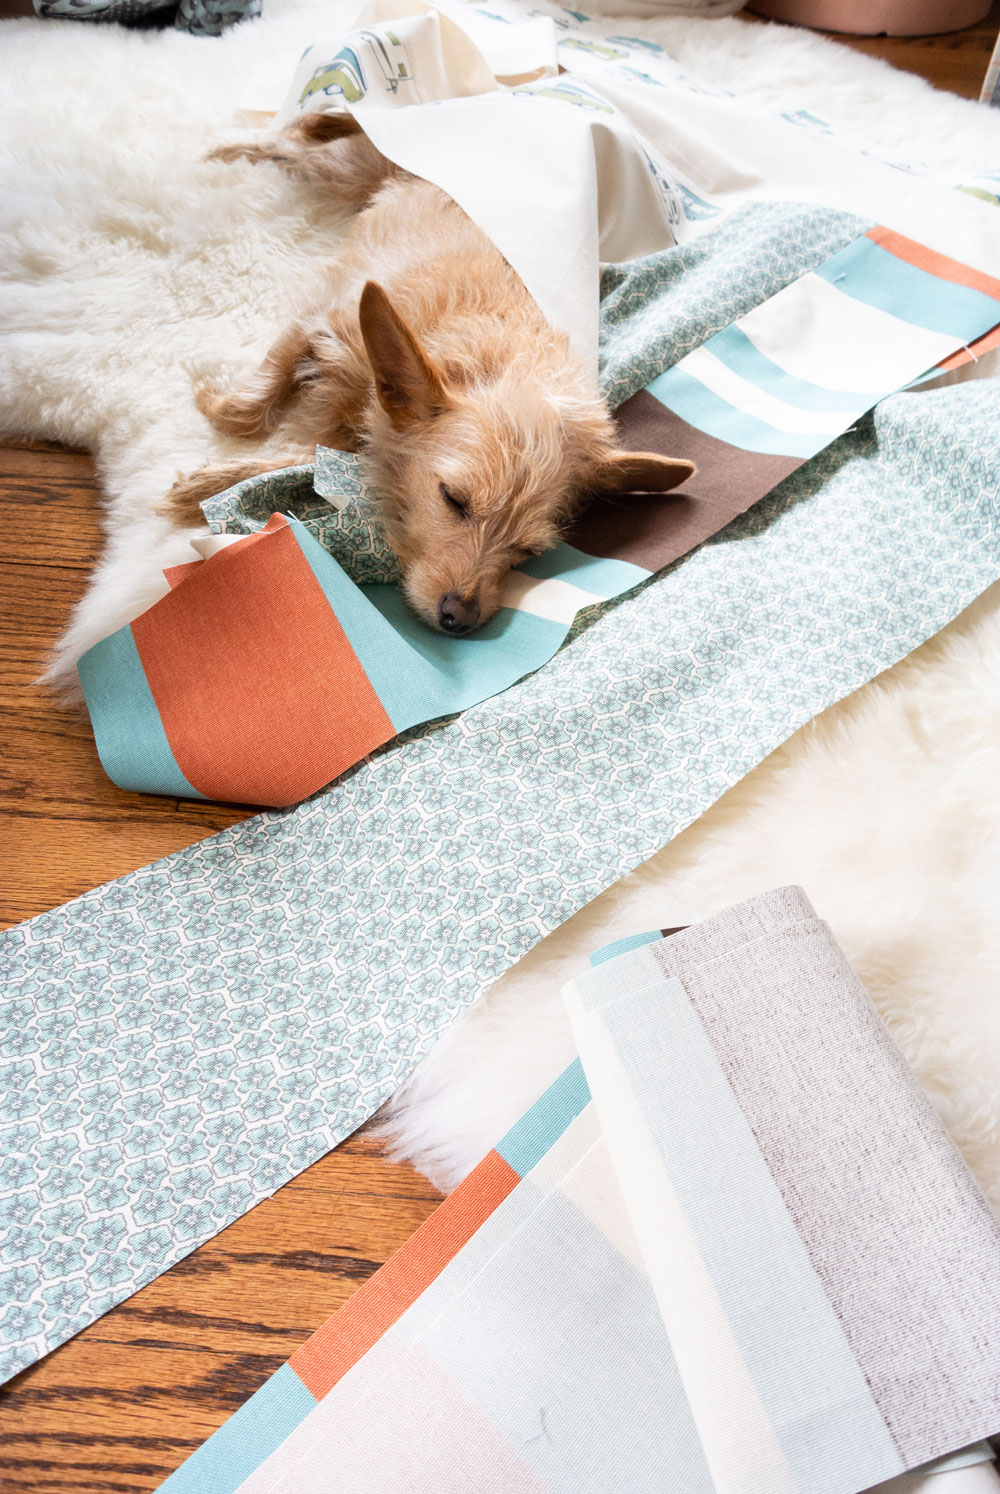 Make an outdoor quilt with canvas!